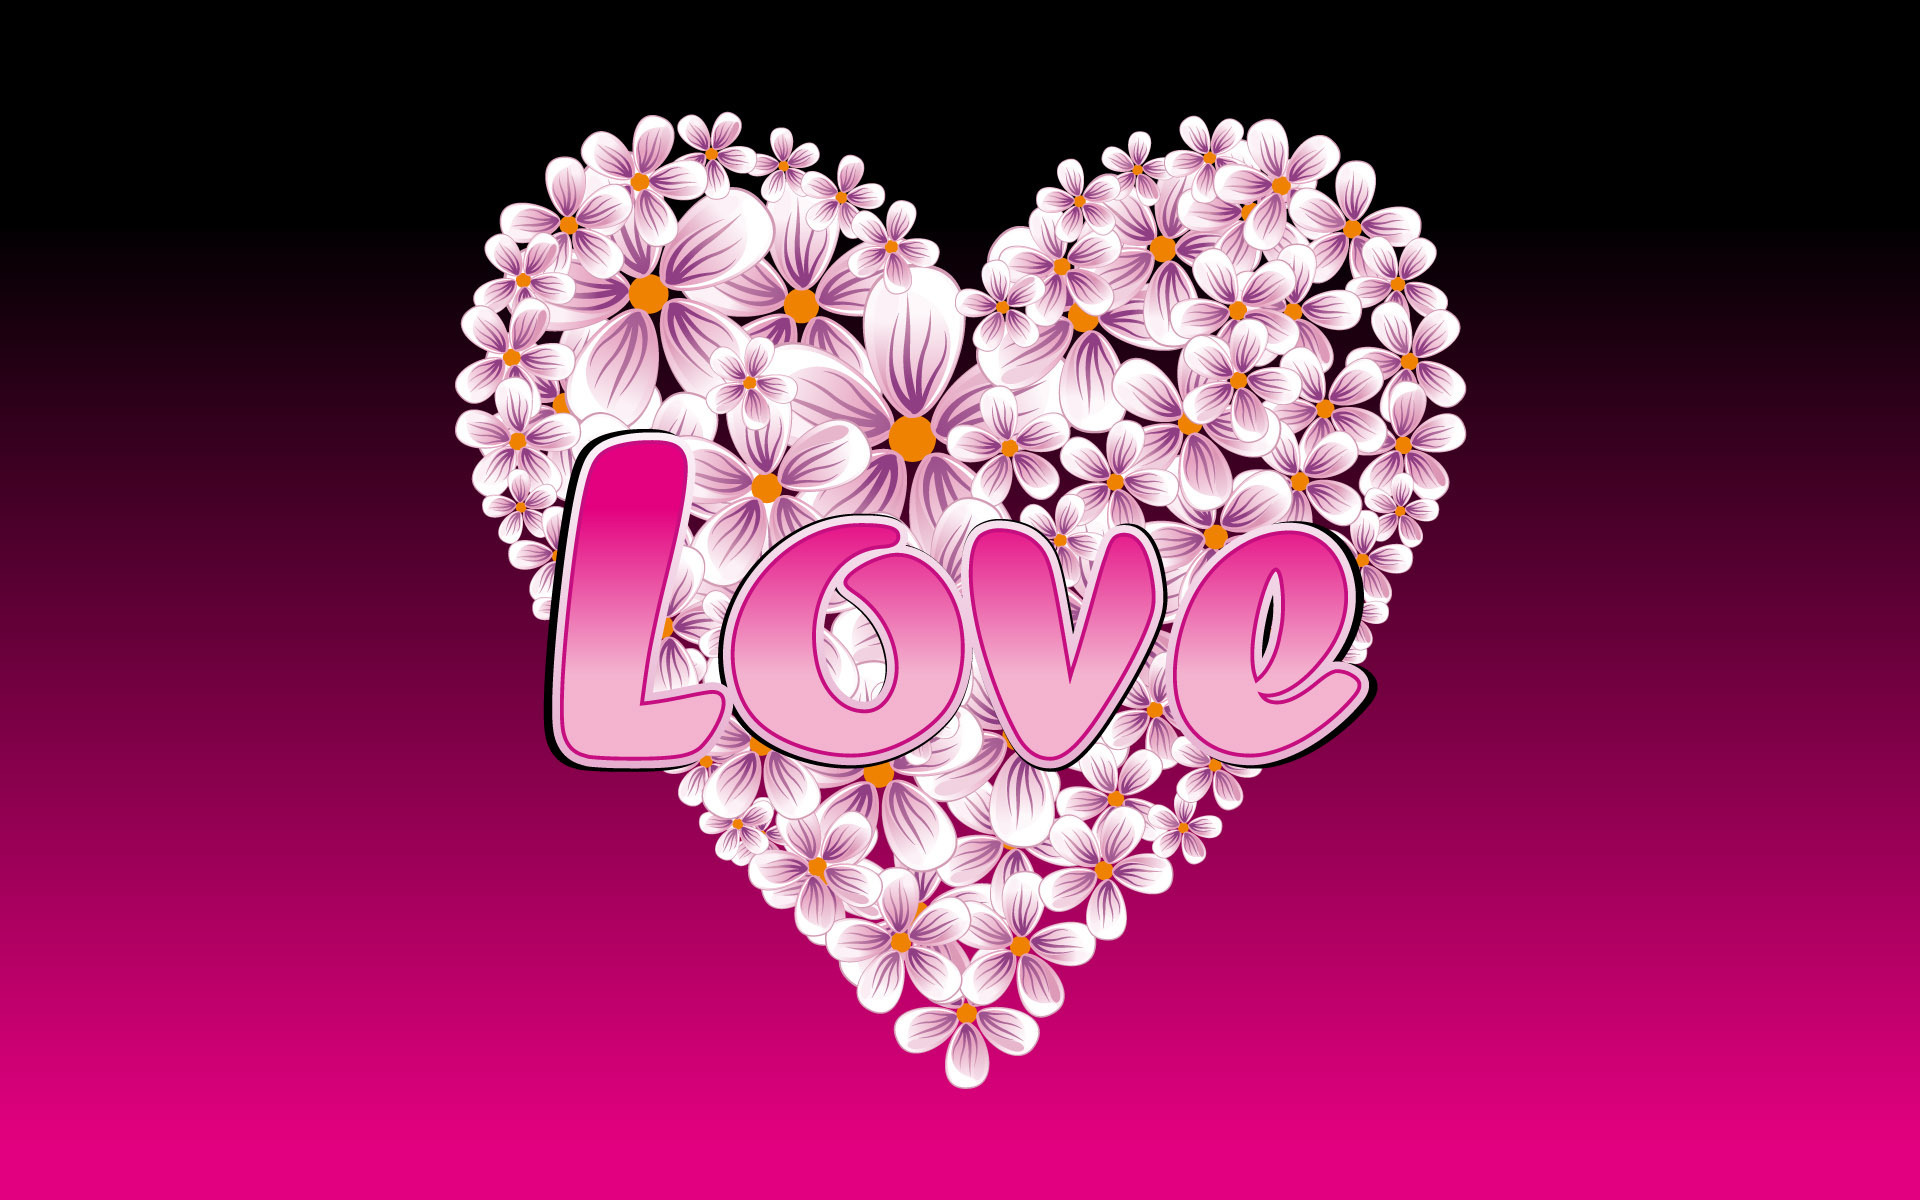 Love Wallpapers Images : Love Wallpaper - Love Wallpaper (4187504) - Fanpop